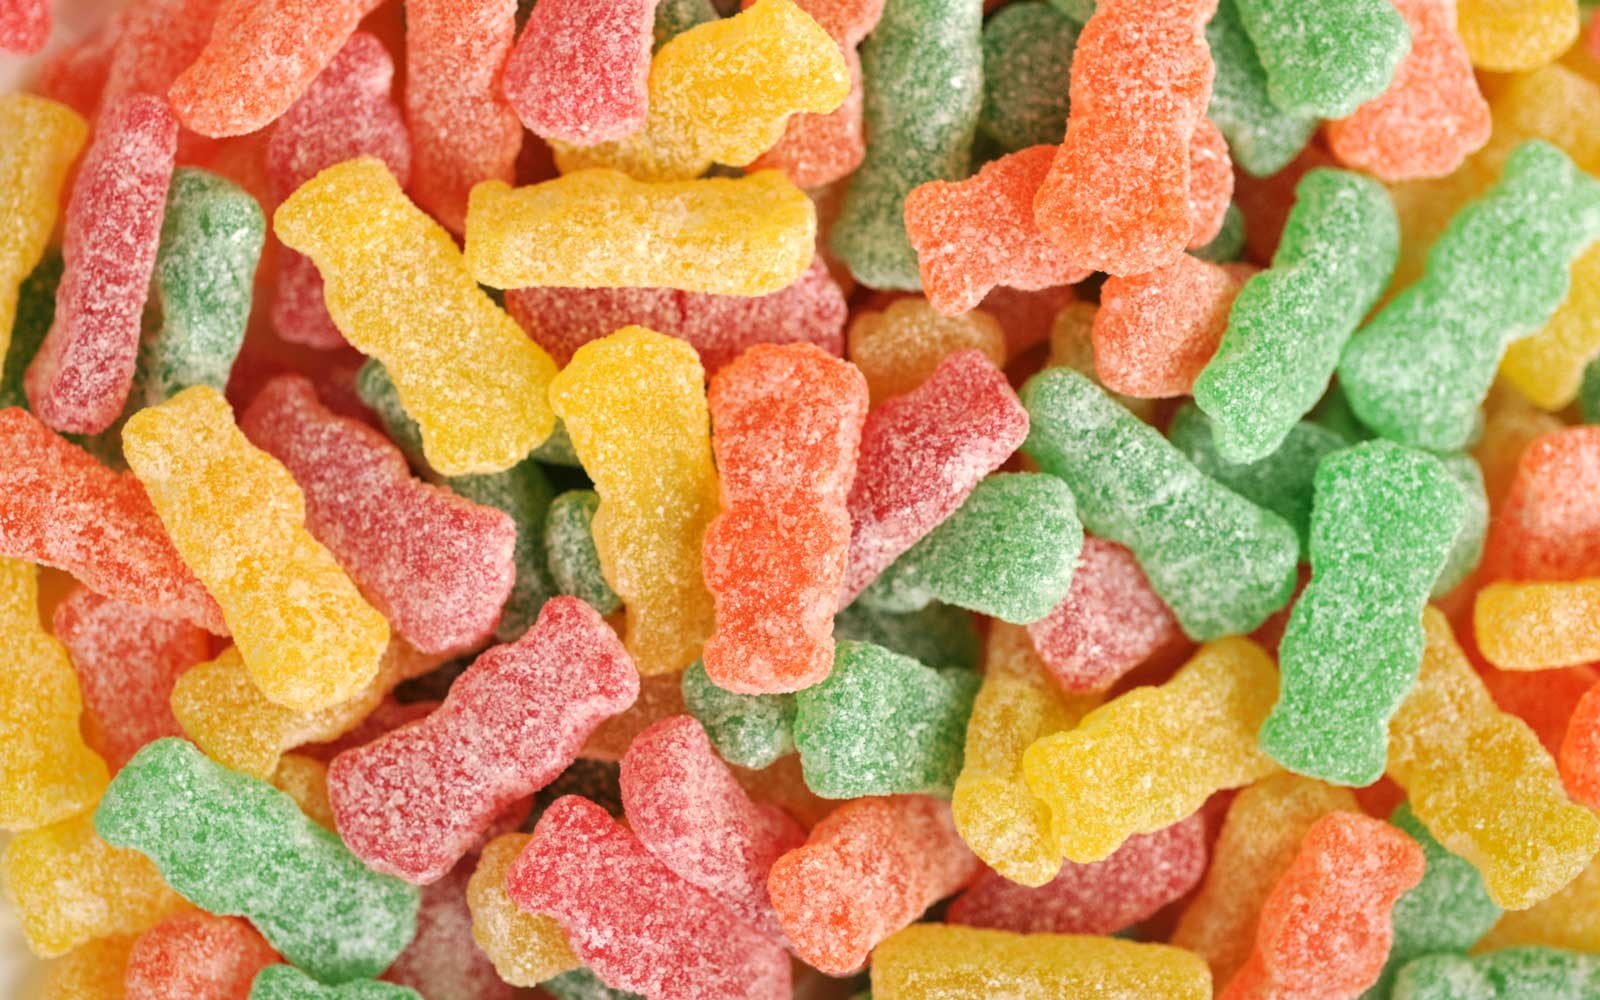 Overhead close-up of colorful sour candy